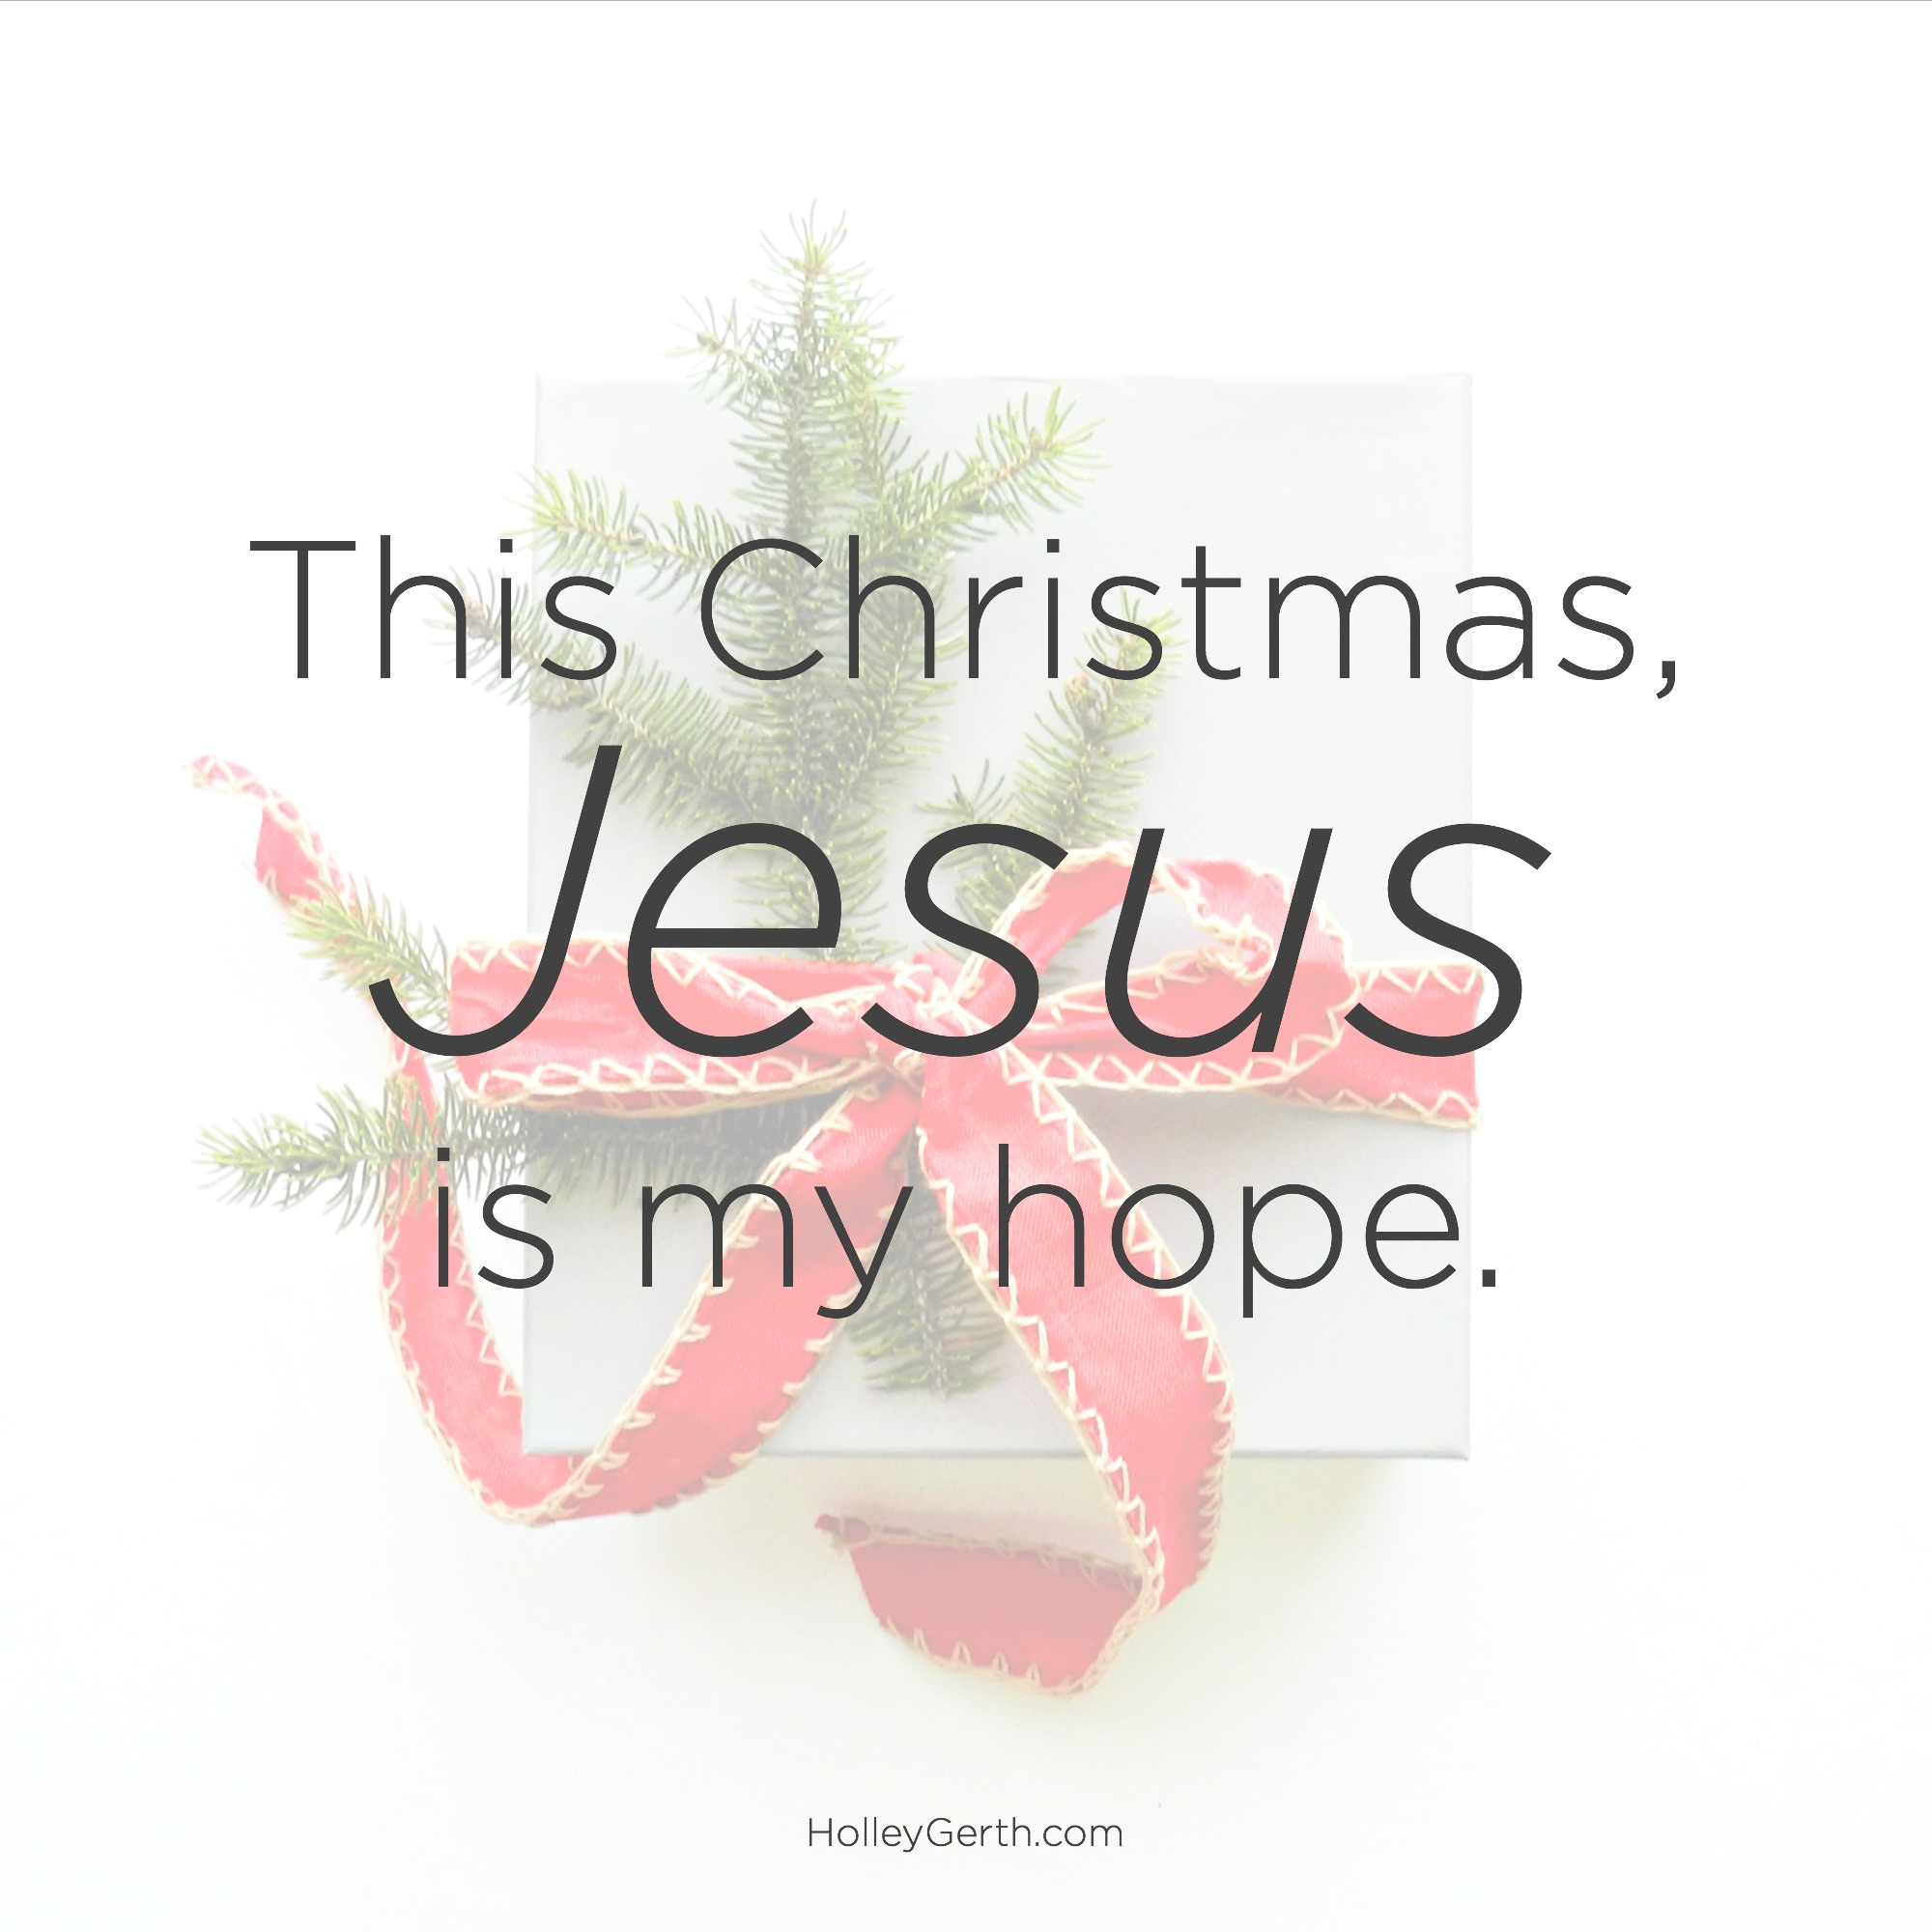 This Christmas, Jesus is my hope.